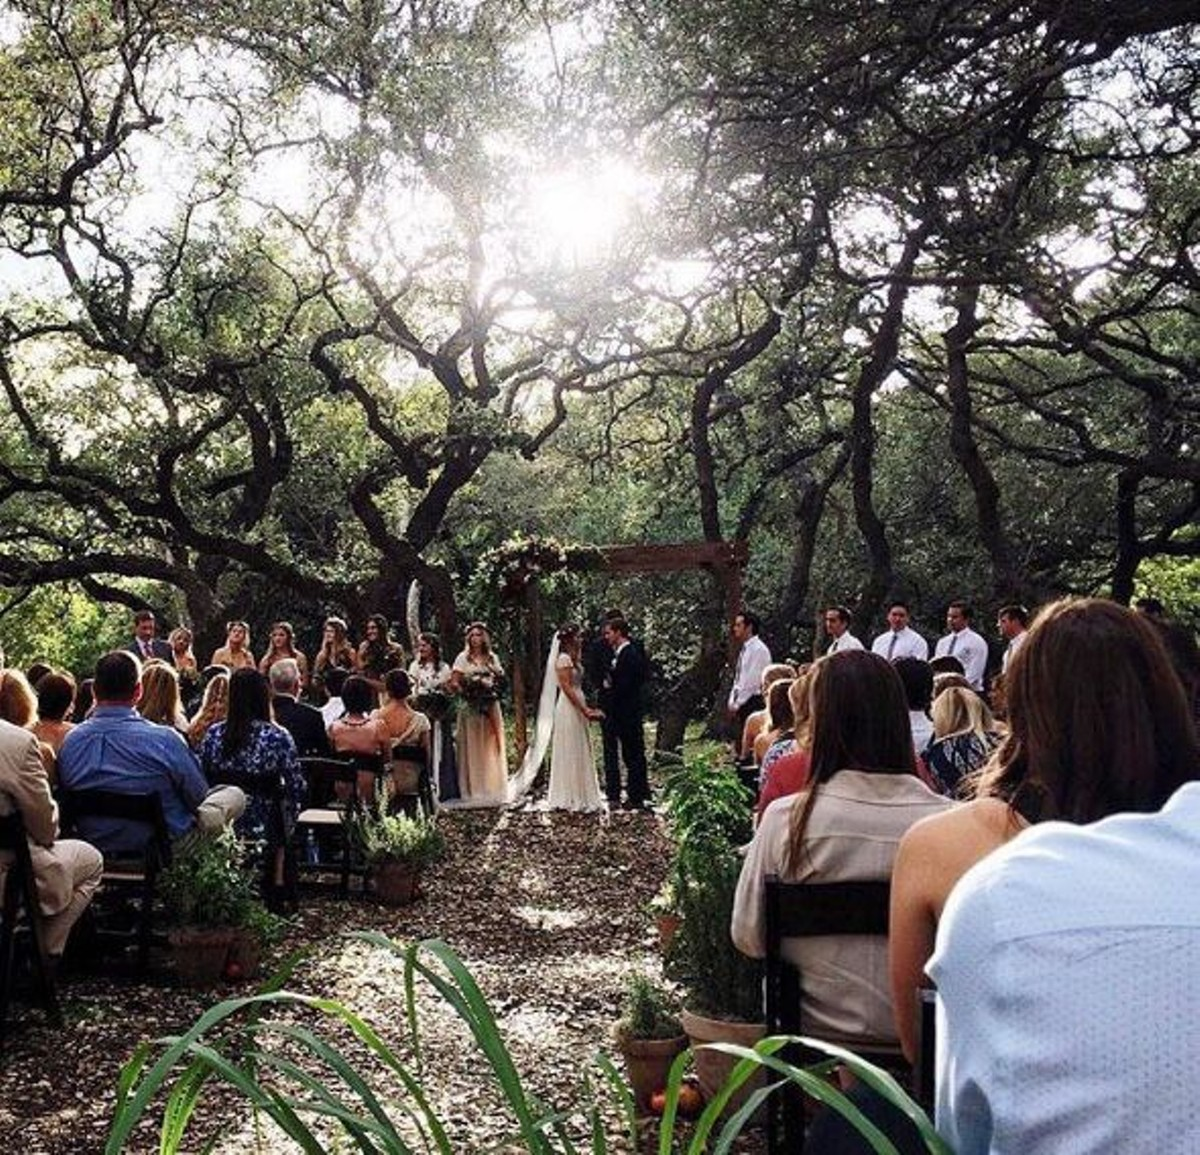 Throughout The 6 000 Square Foot Venue You Ll Find Chandeliers Texas Wildflowers Longhorns Oak Trees And A View Of Pond Giving Perfect